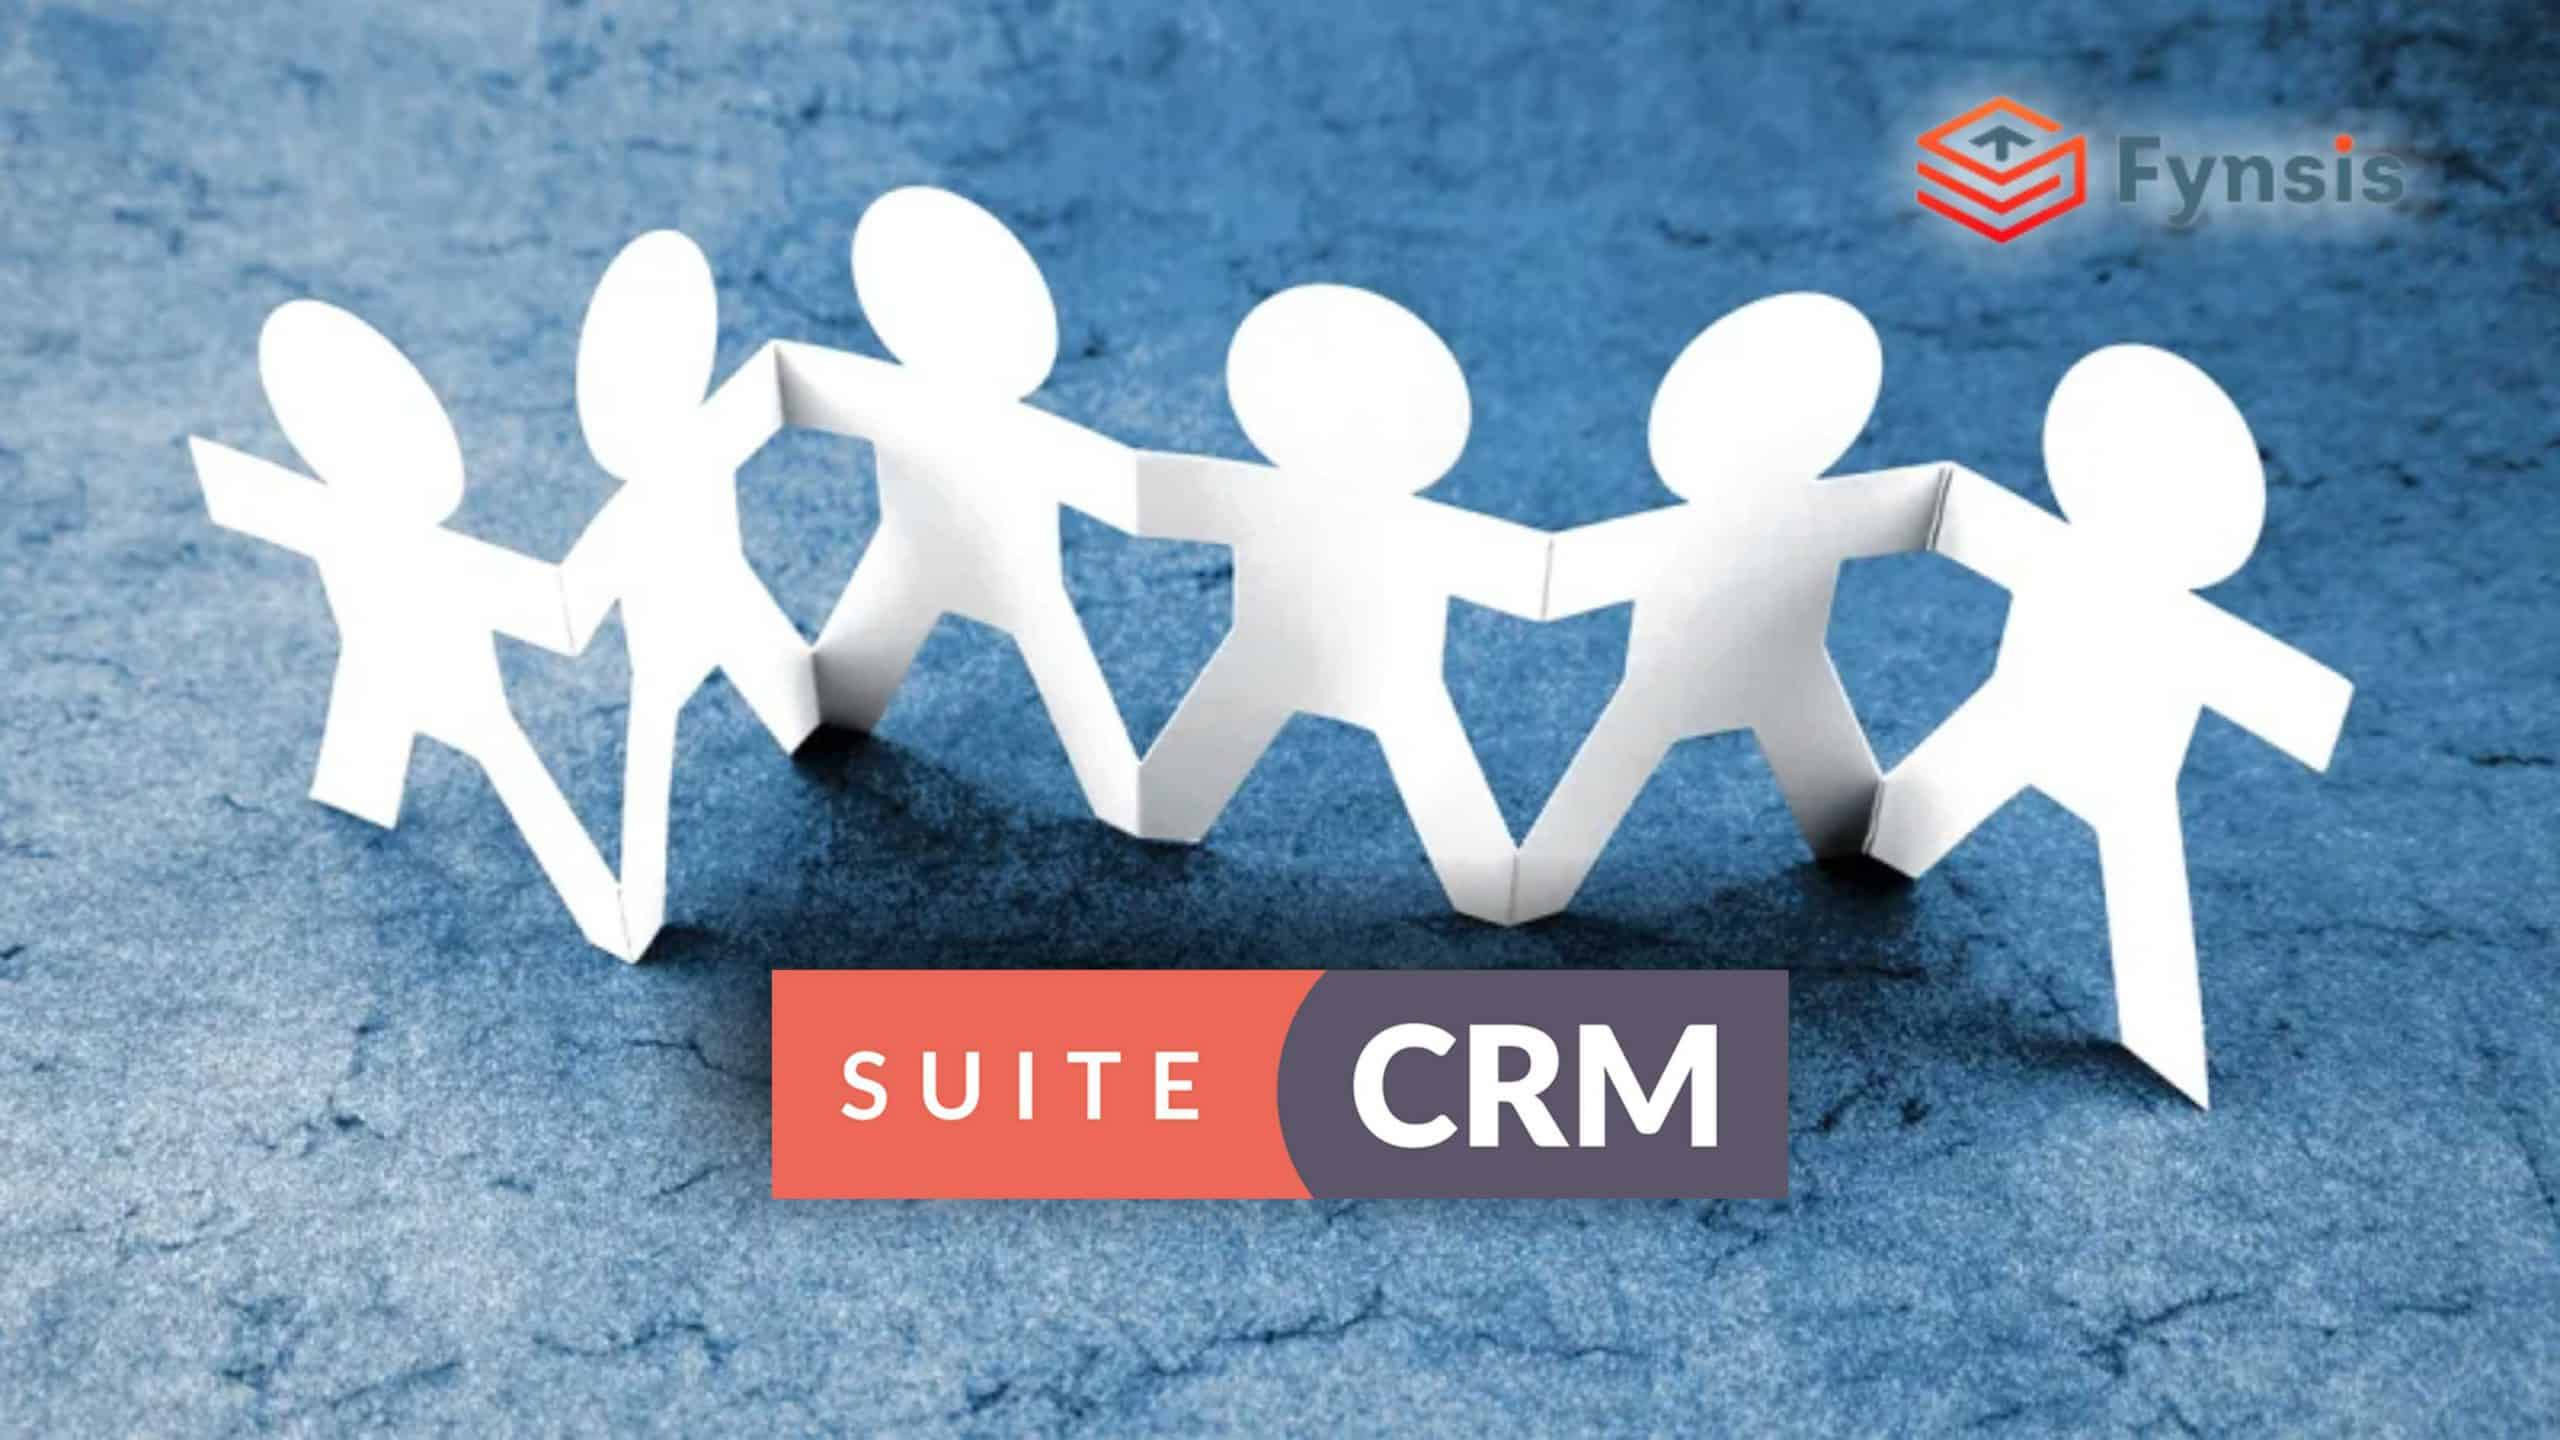 All about Contact Management on SuiteCRM